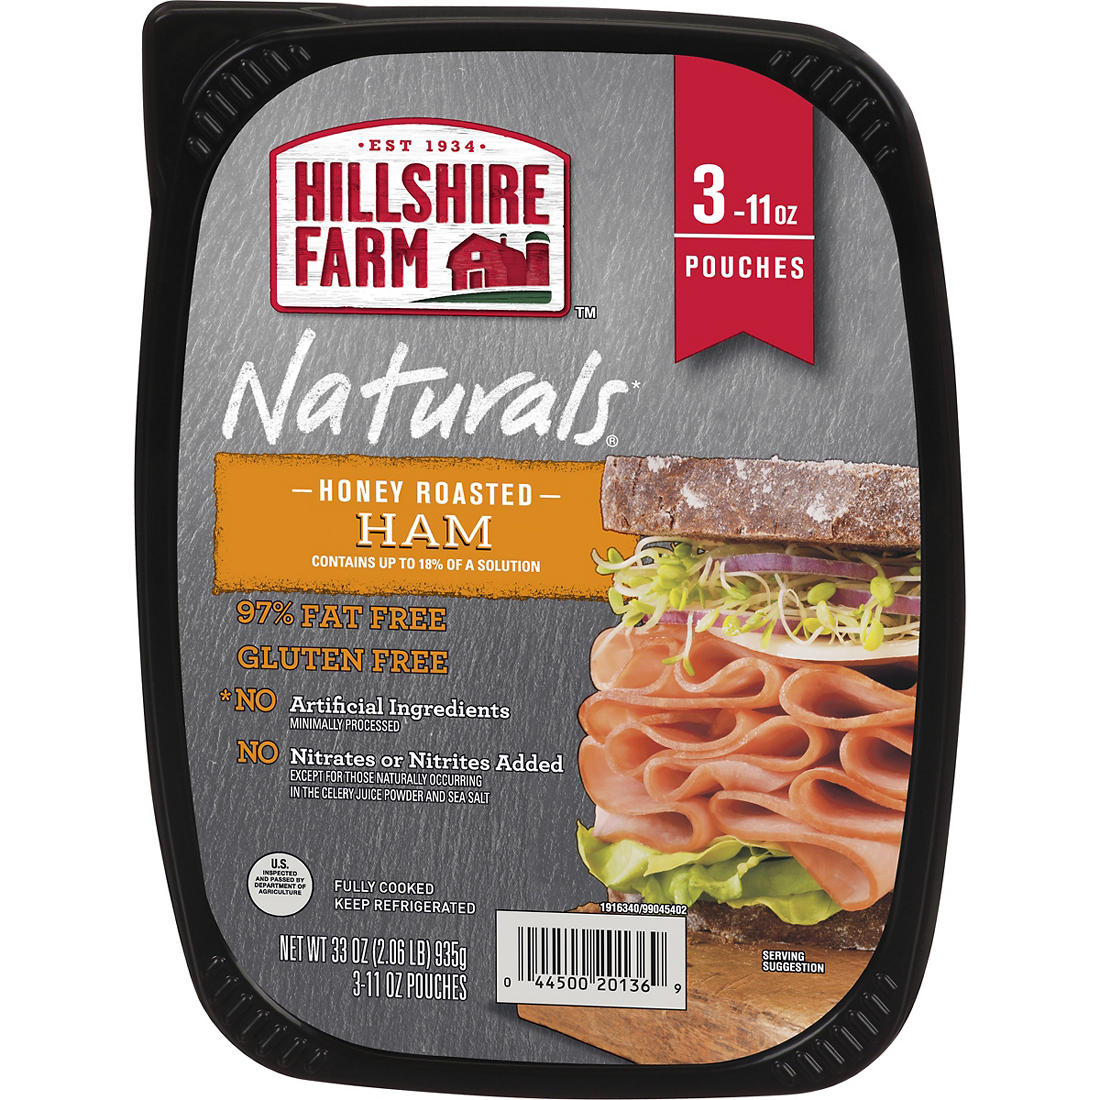 40% Off Hickory Farms Coupons & Promo Codes 12222 + 7% Cash Back